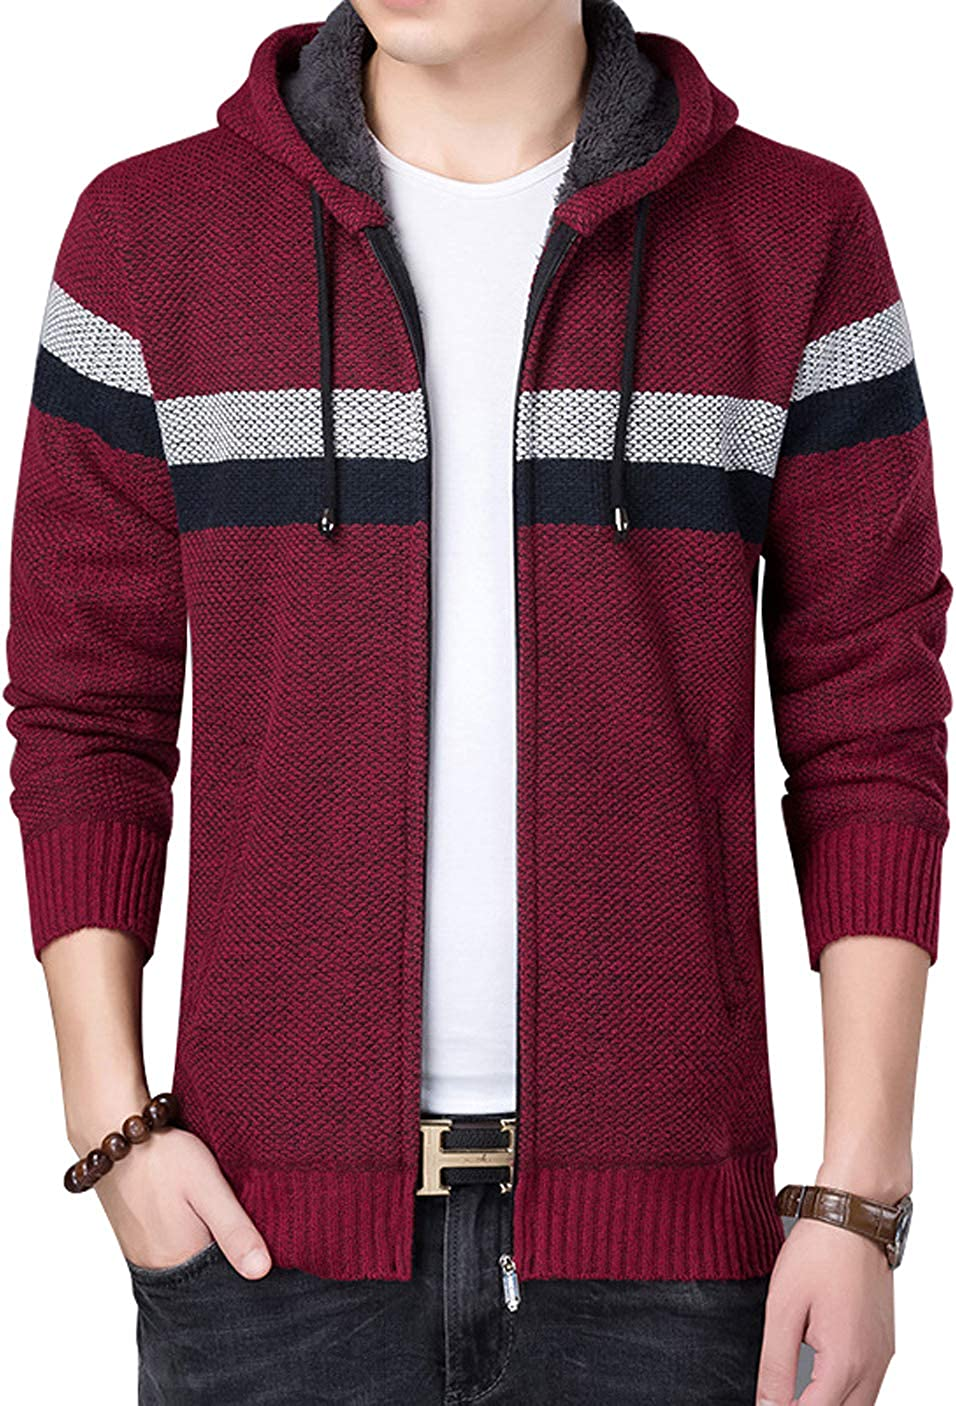 chouyatou Men's Casual Stripe Chest Faux Fur Lined Knitted Cardigan Sweater Hood